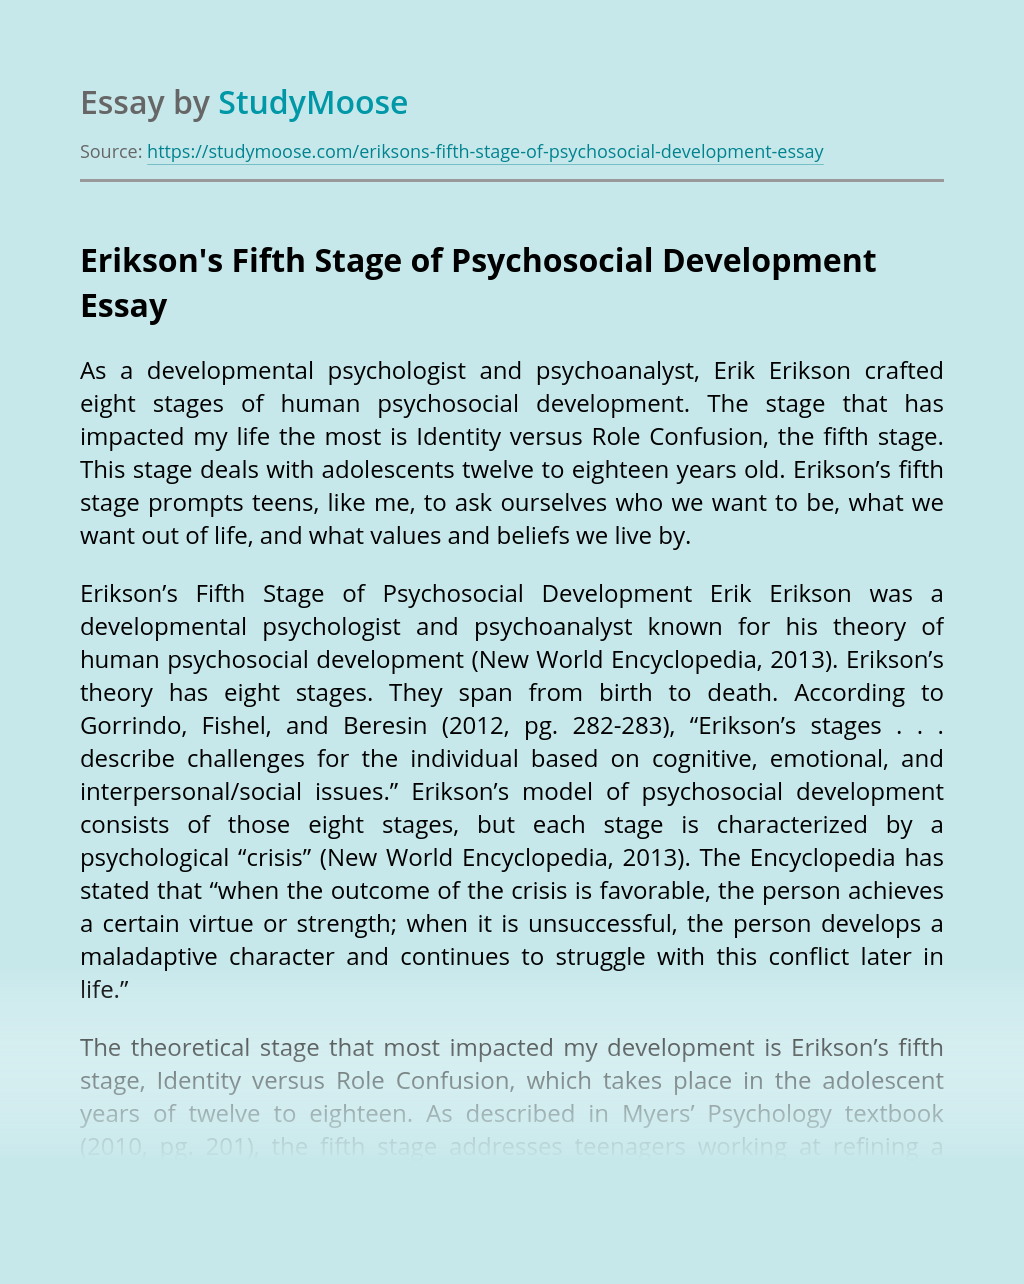 Erikson's Fifth Stage of Psychosocial Development